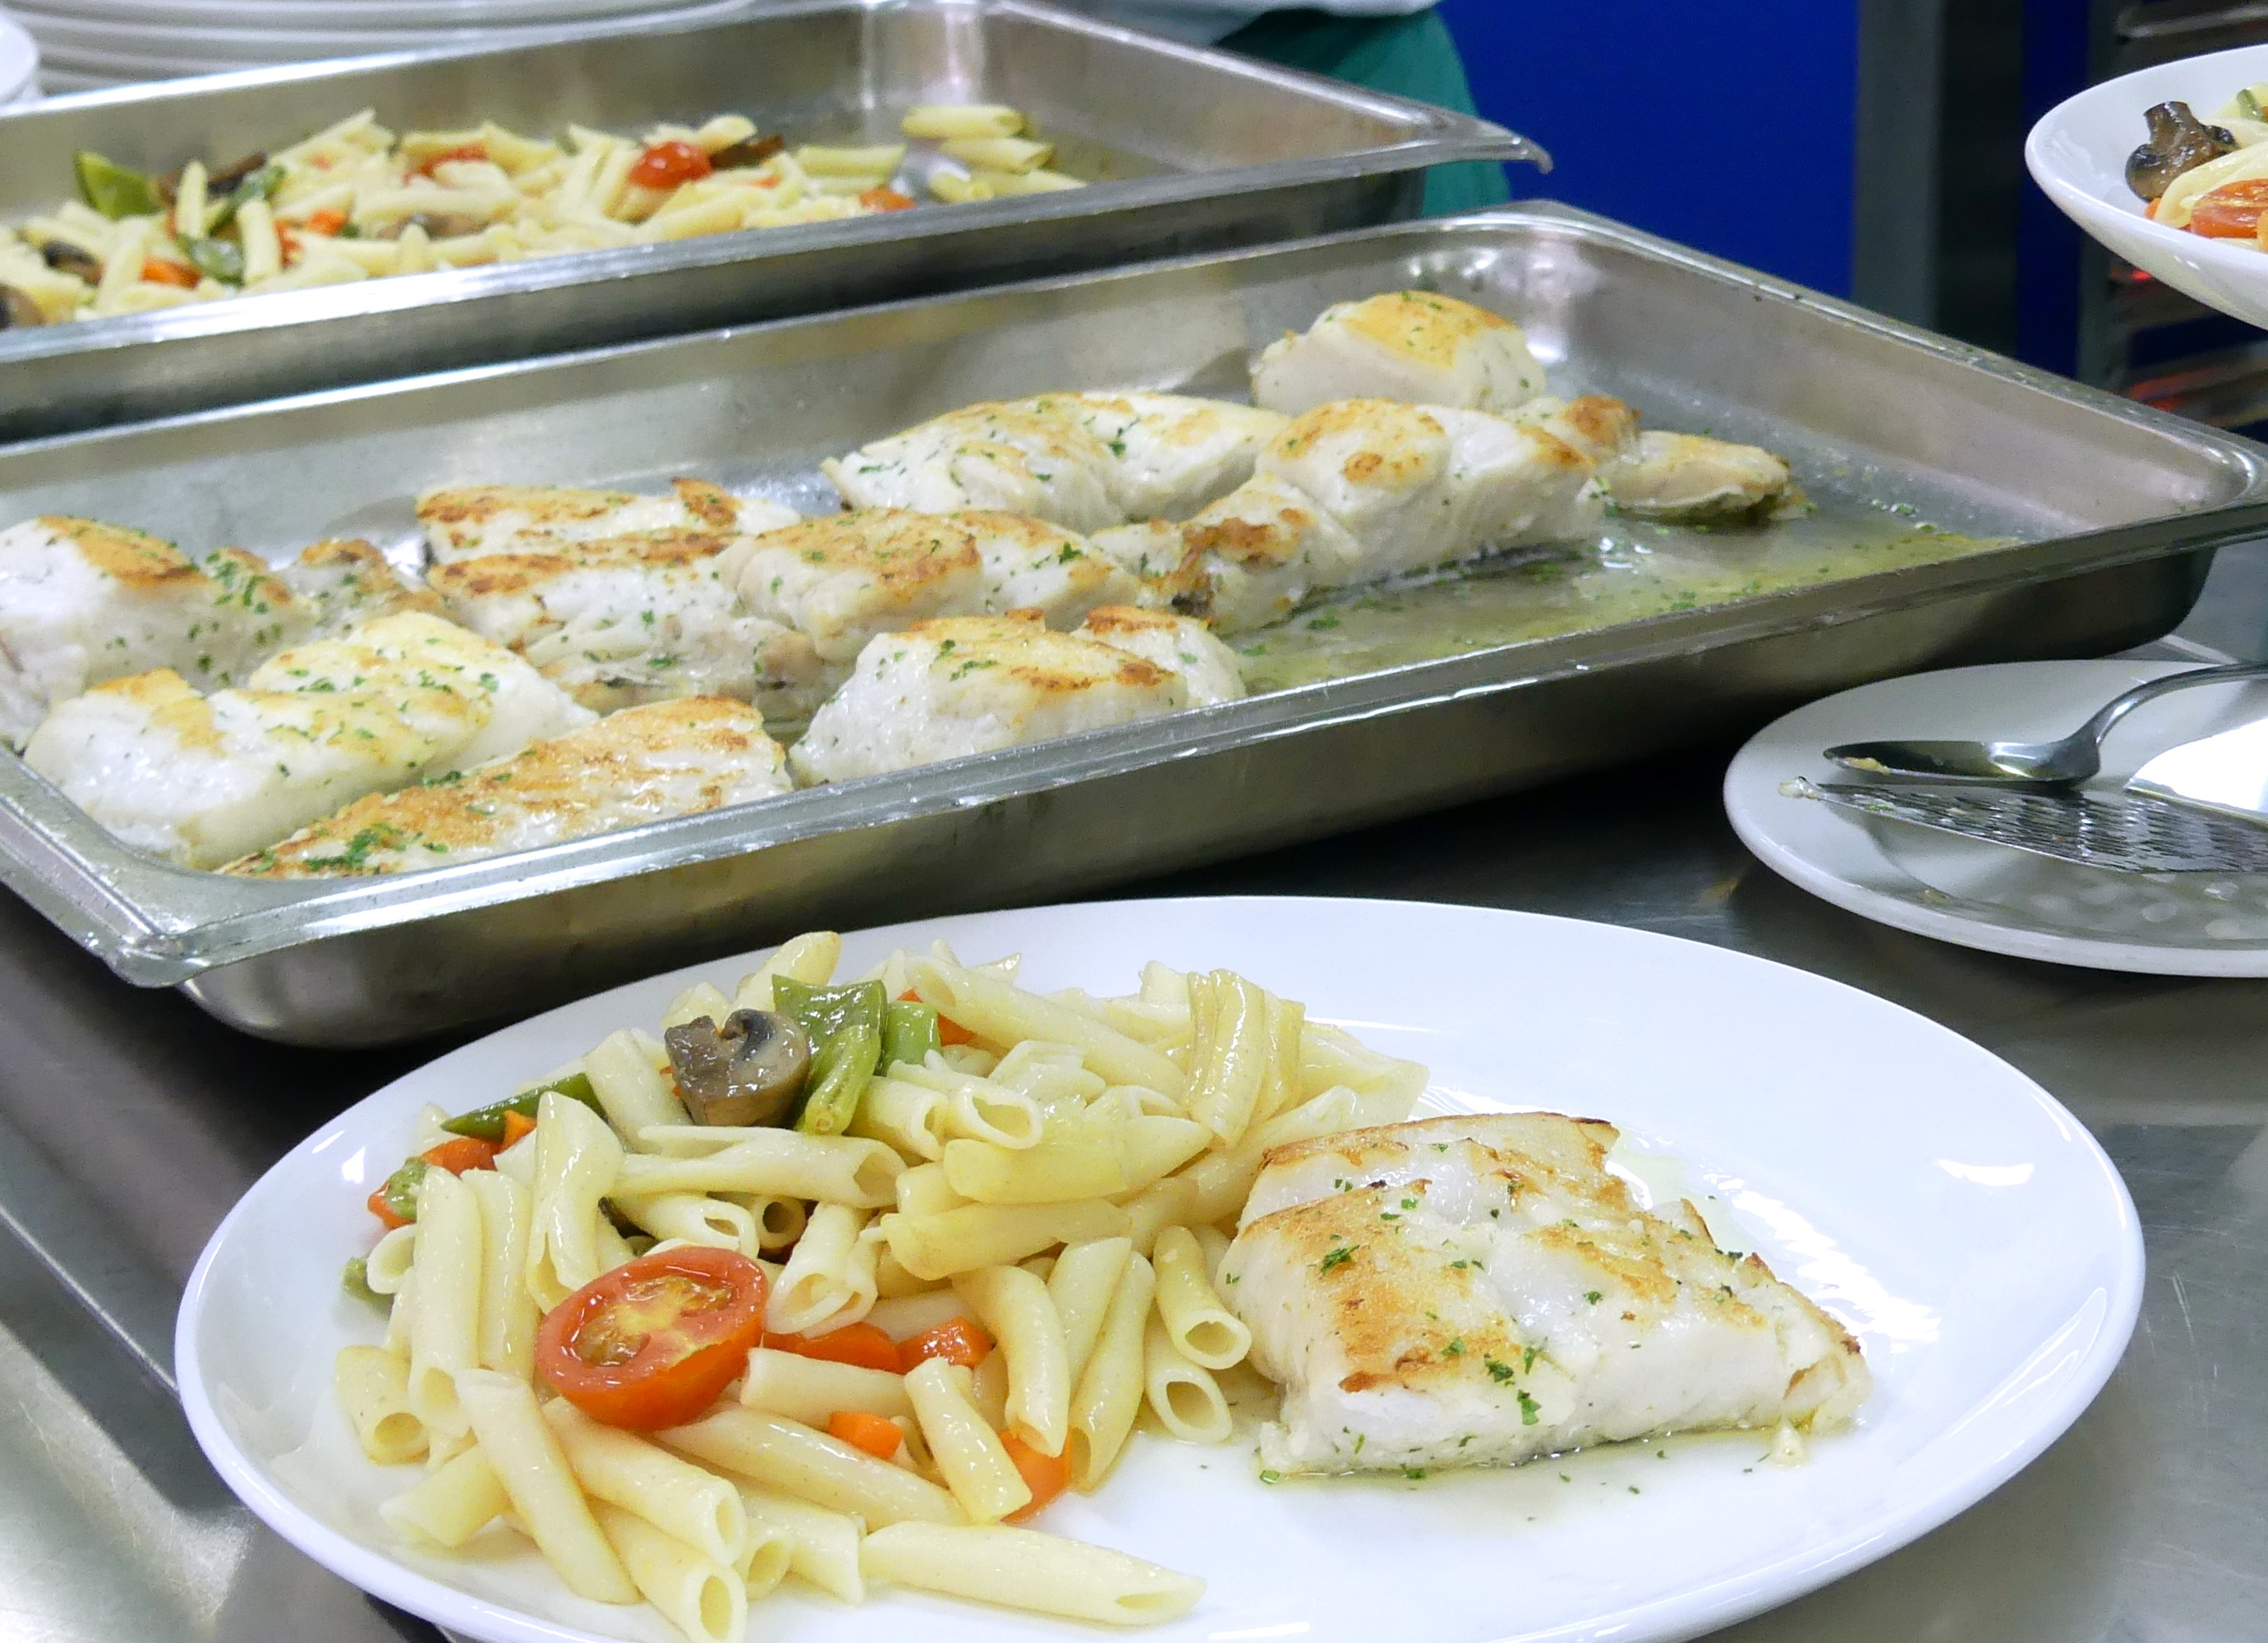 Grilled Whiting With Pasta And Vegetable Wok Gastronomia Vasca